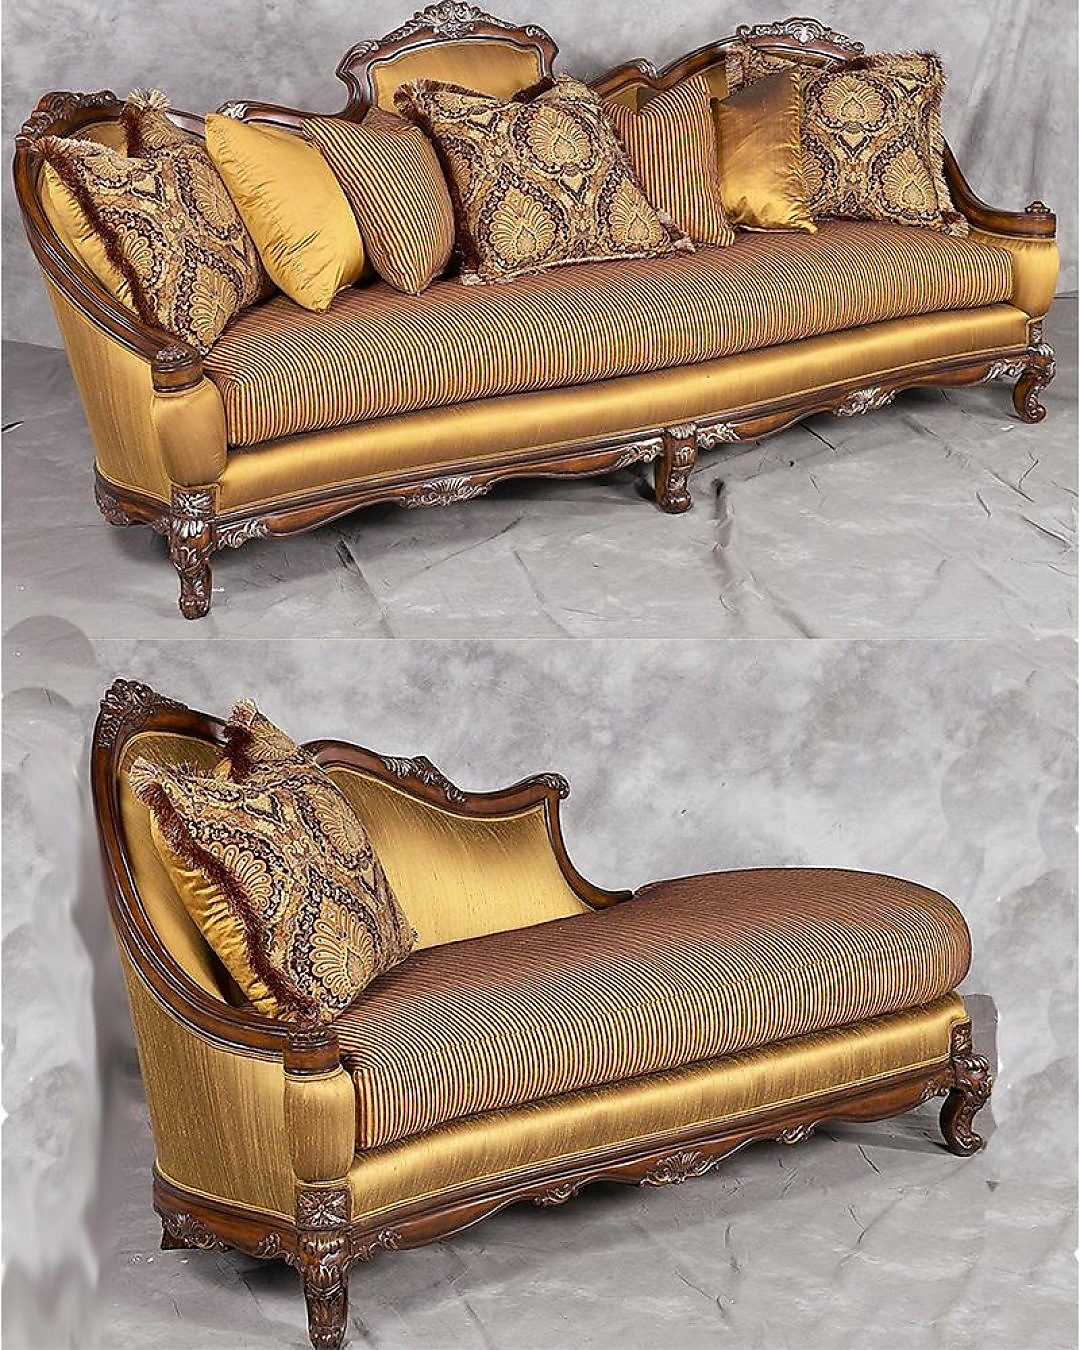 Bennetti Luxury Silk Chenille Sofa Set 2Pcs Carved Wood Milania Sofa Chaise Lounge Classic Traditional